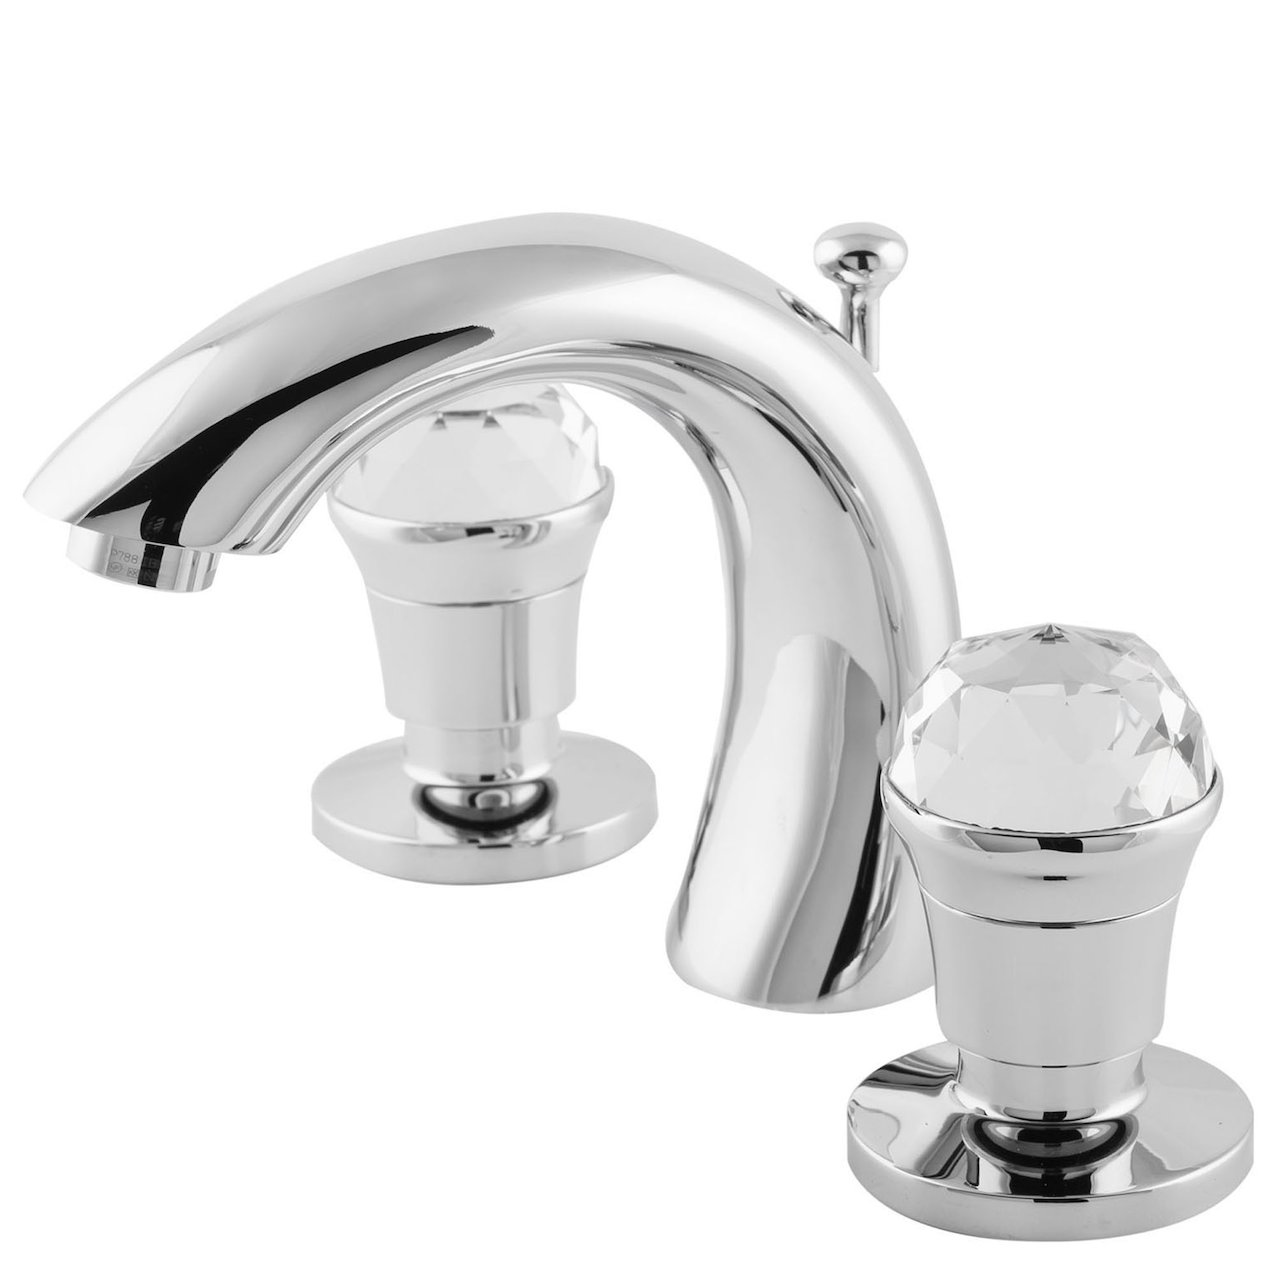 3-Hole Basin Mixer Cheope